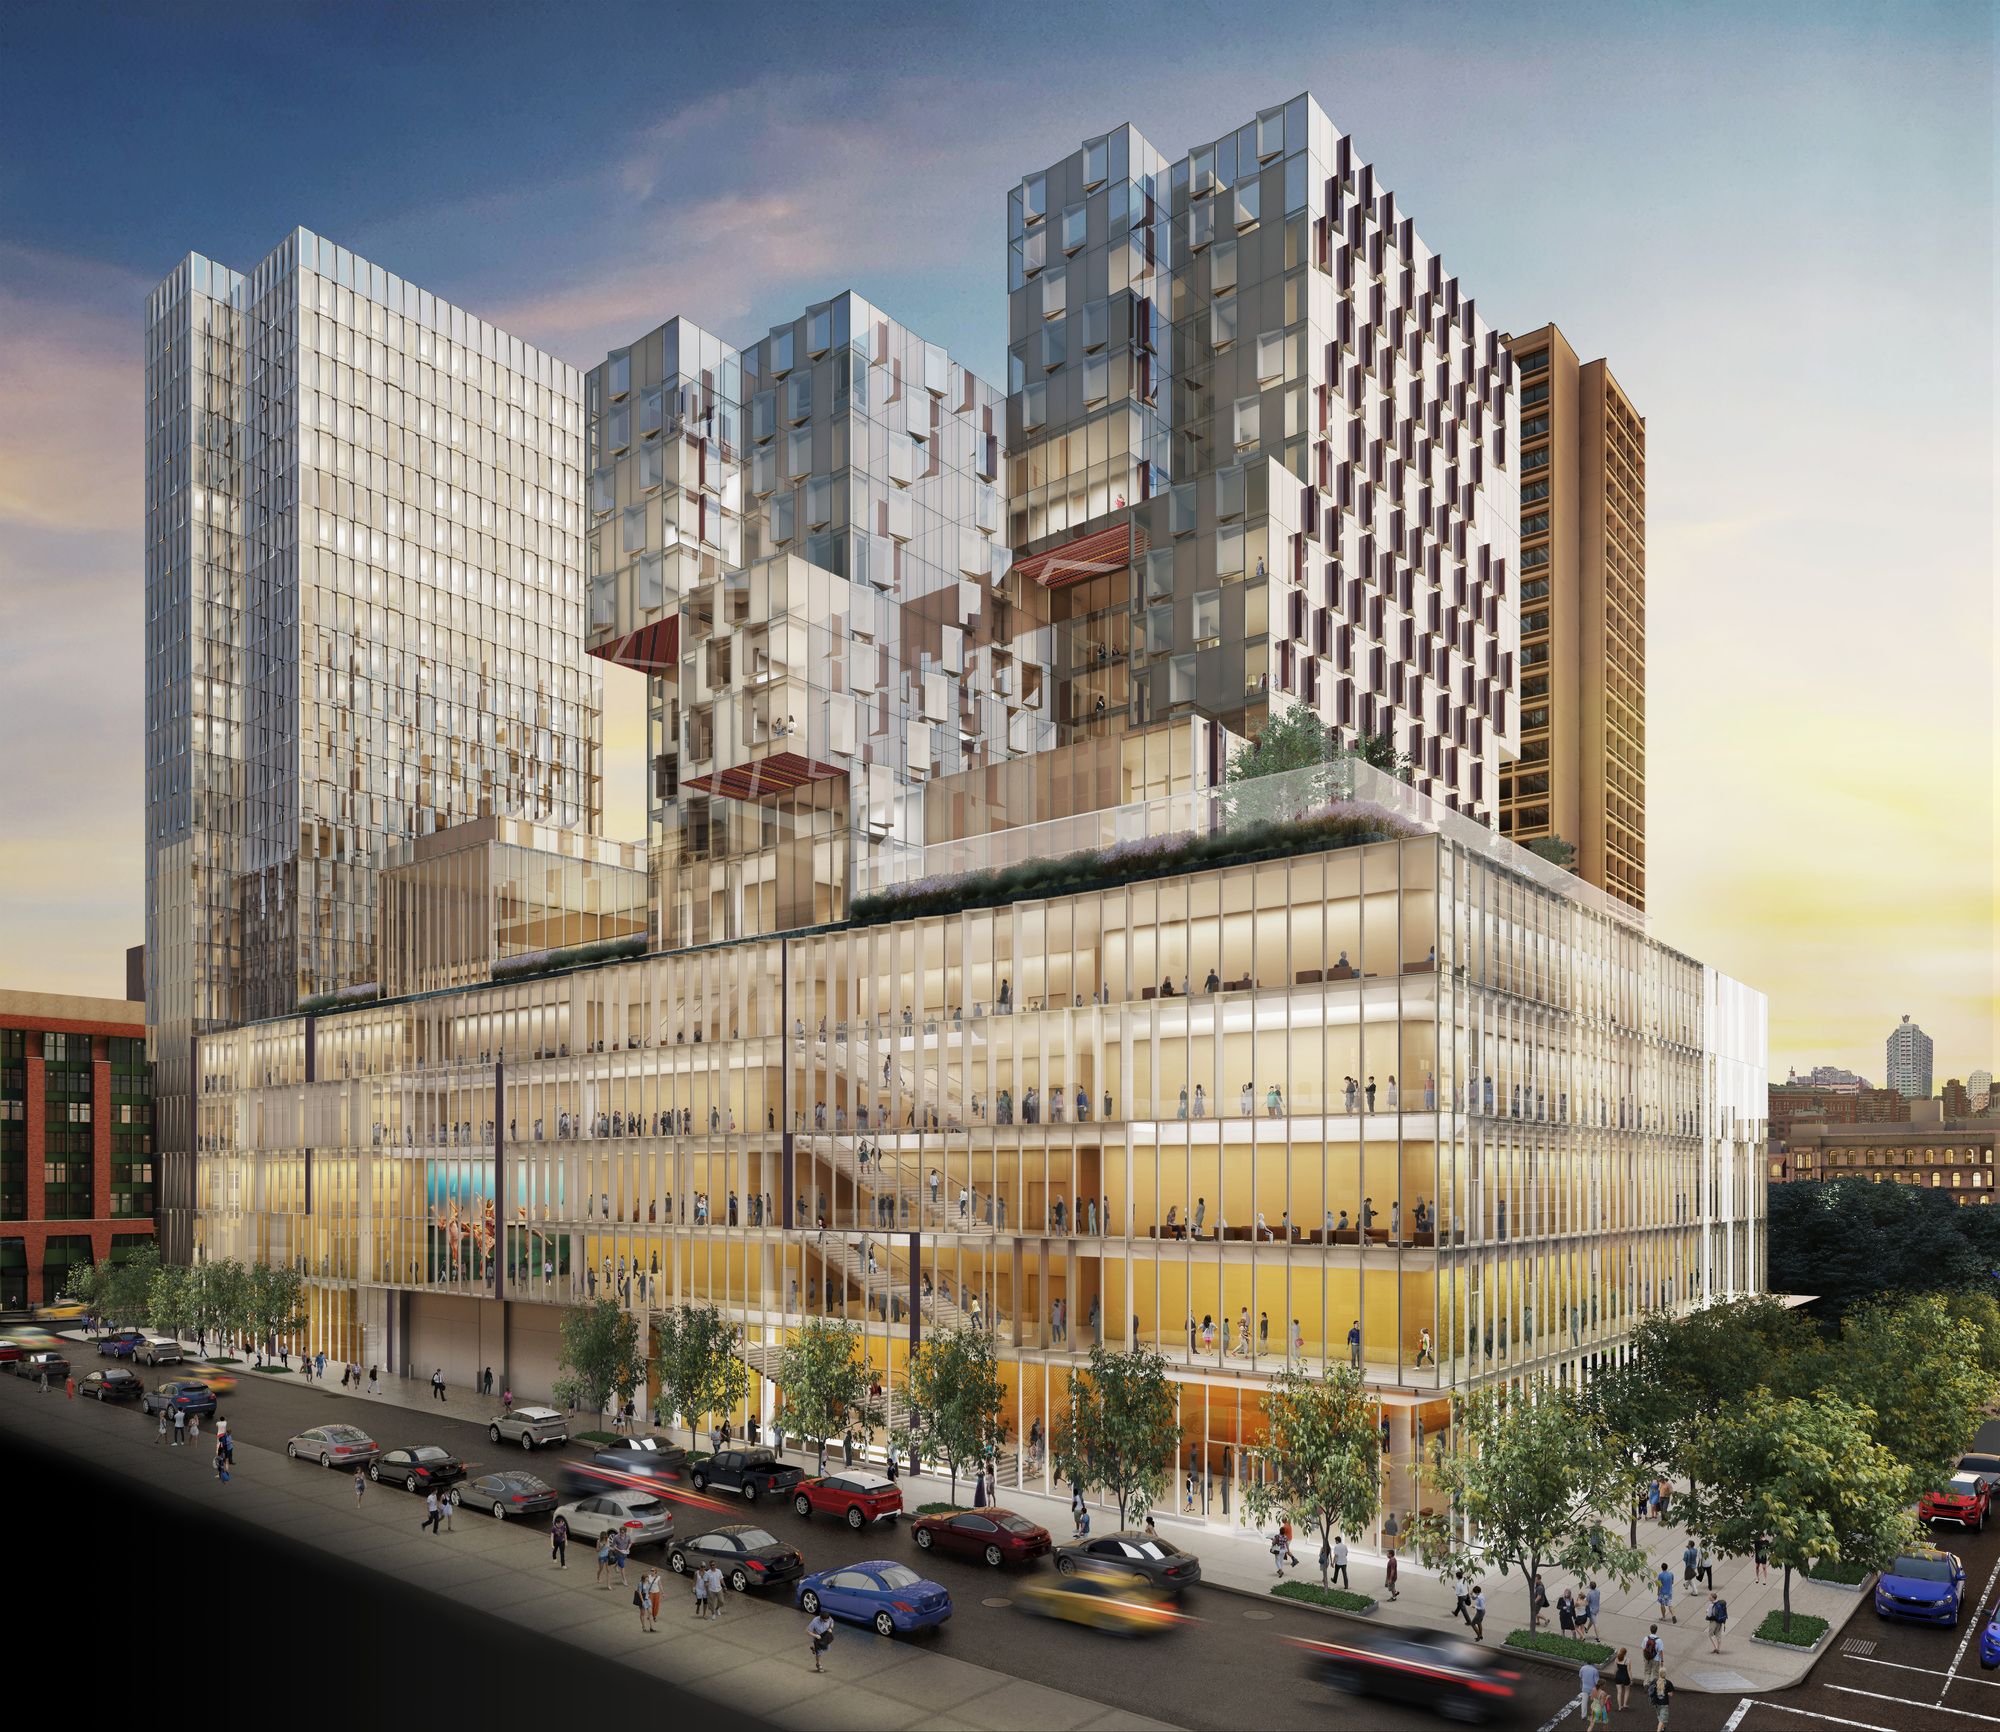 Nyc Apartments For Students: Davis Brody Bond And Kieran Timberlake Unveil Designs For